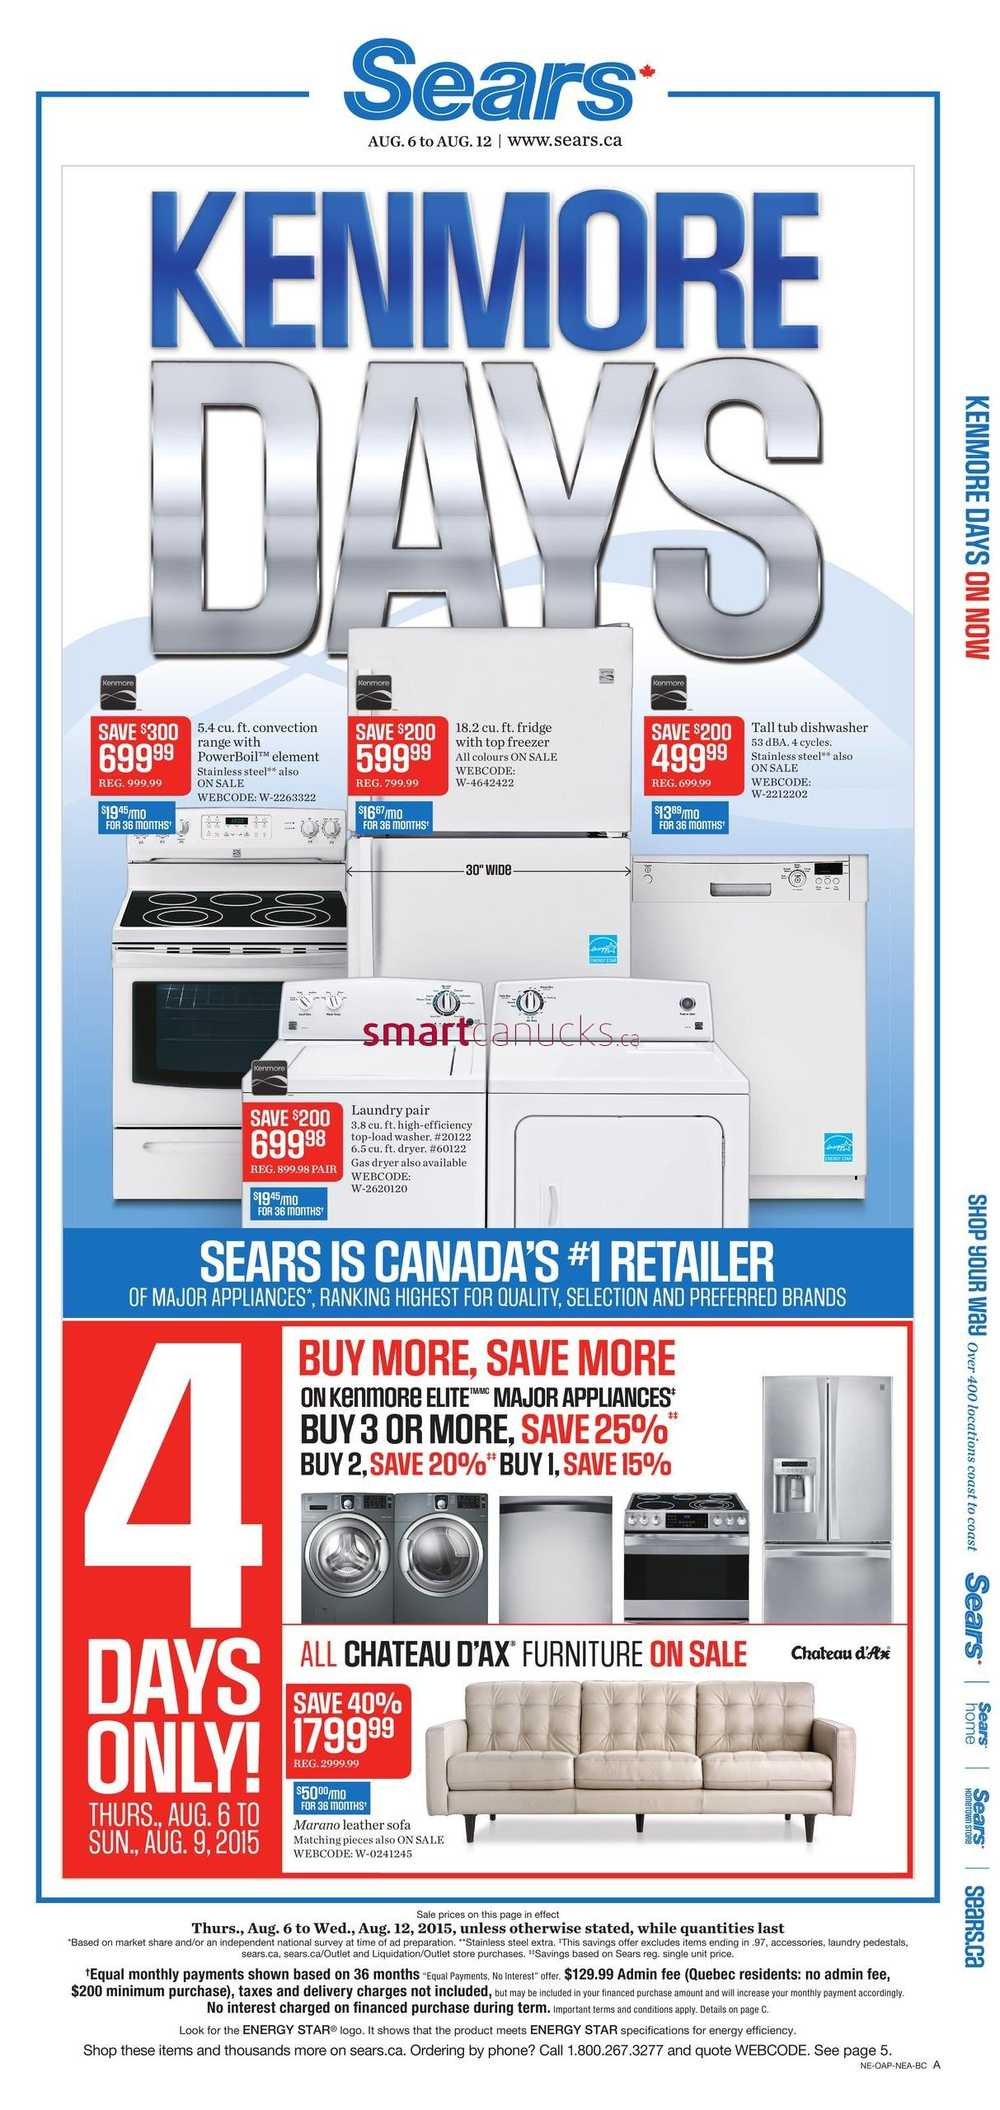 photograph about Sears Coupons Printable identify Sears discount codes canada august 2018 : Printable coupon for egg